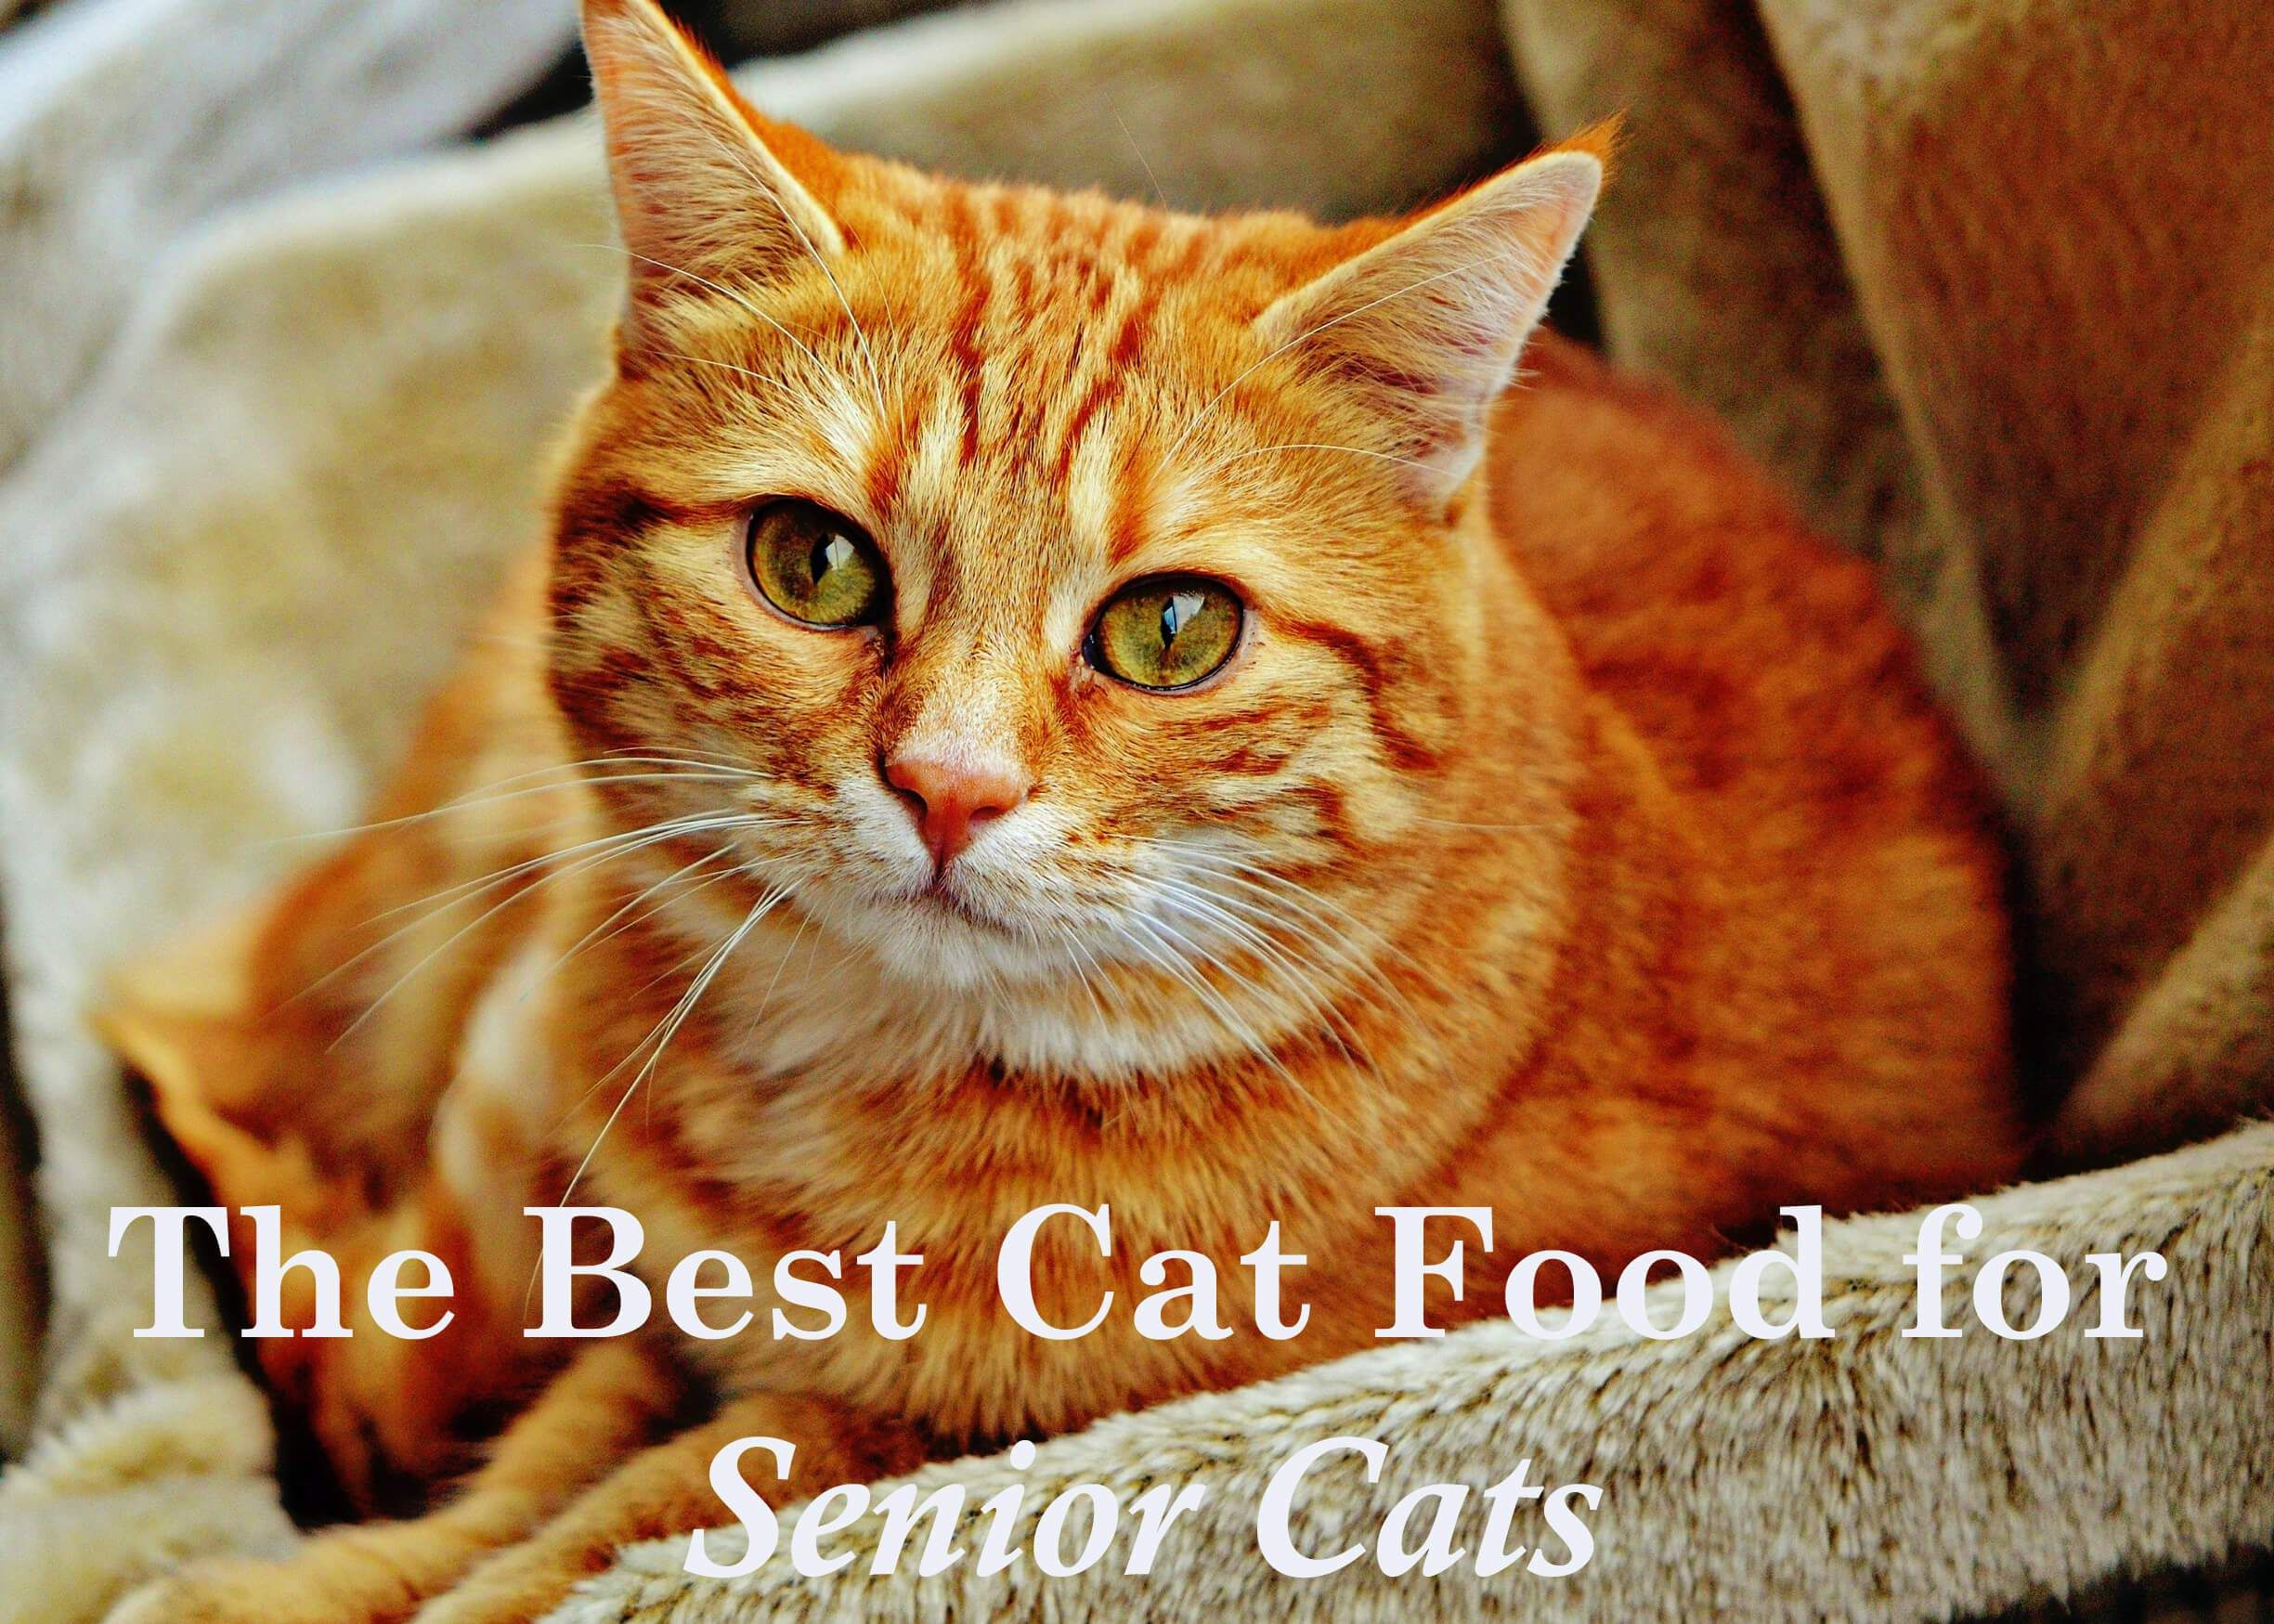 The Best Cat Food for Senior Cats 2020 Cute cat names